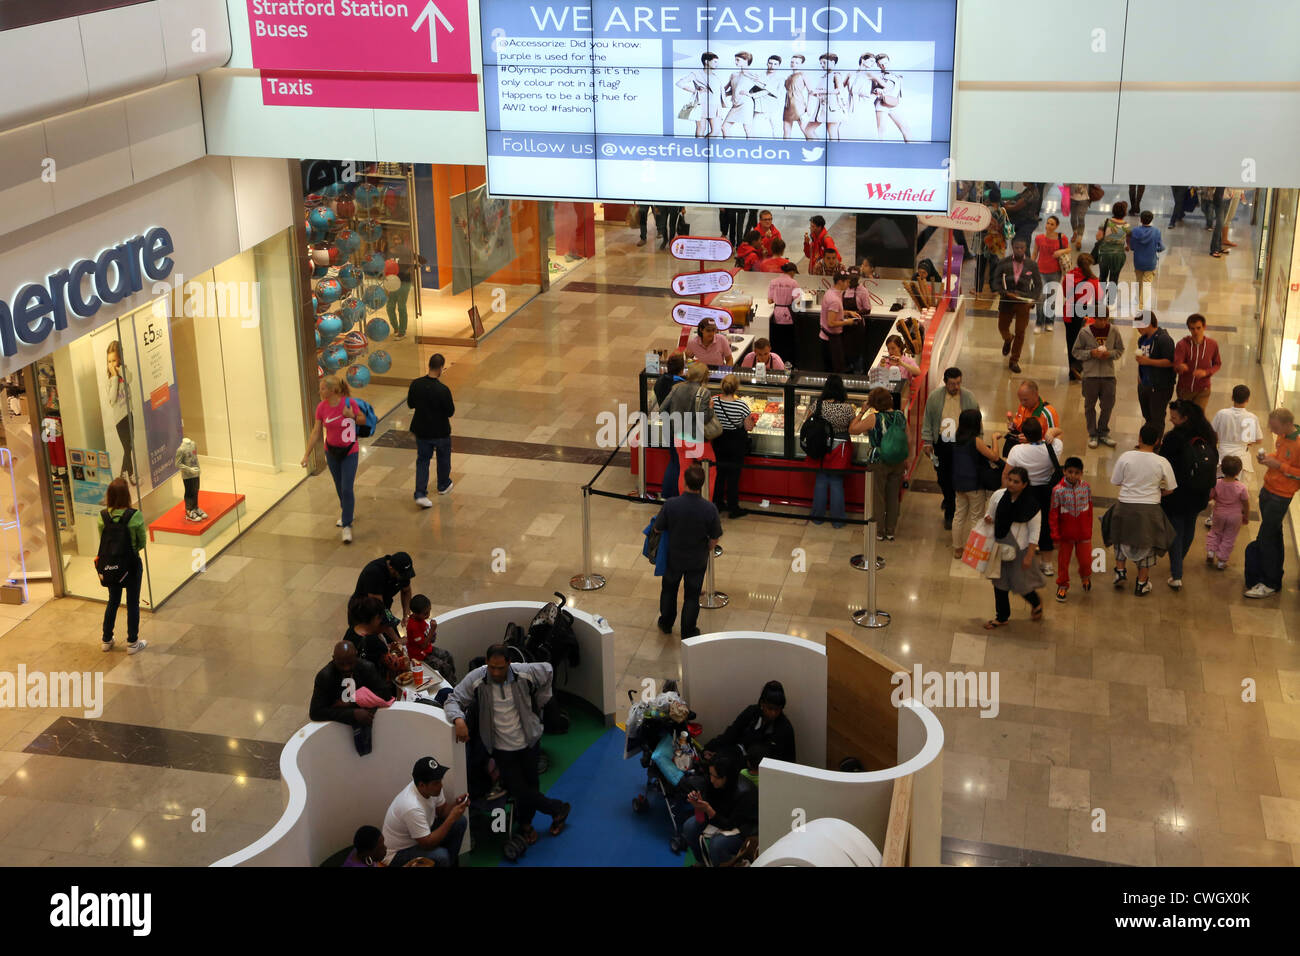 stratford London England Westfield Shopping Centre People Shopping And Ice Cream Stall - Stock Image